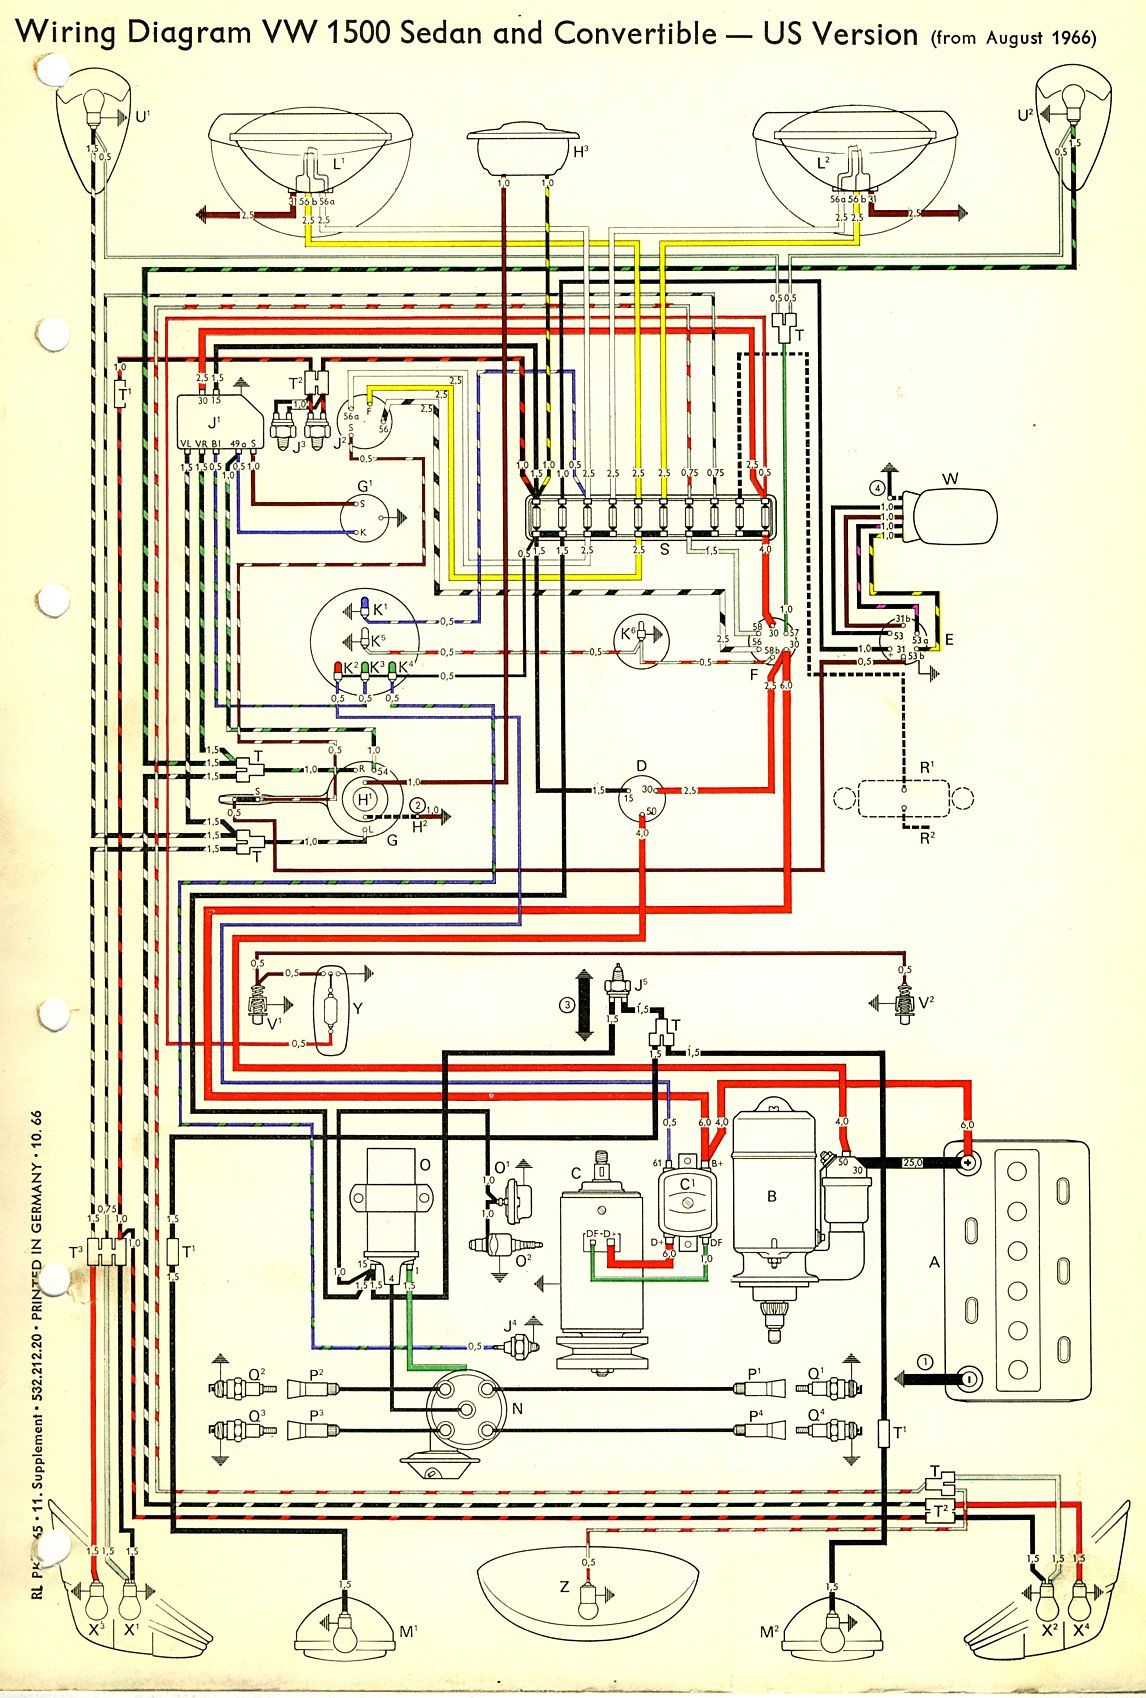 1adf990c0efb617c789fdd21338448b0 1967 beetle wiring diagram (usa) thegoldenbug com best 1967 vw new beetle wiring diagram at bayanpartner.co